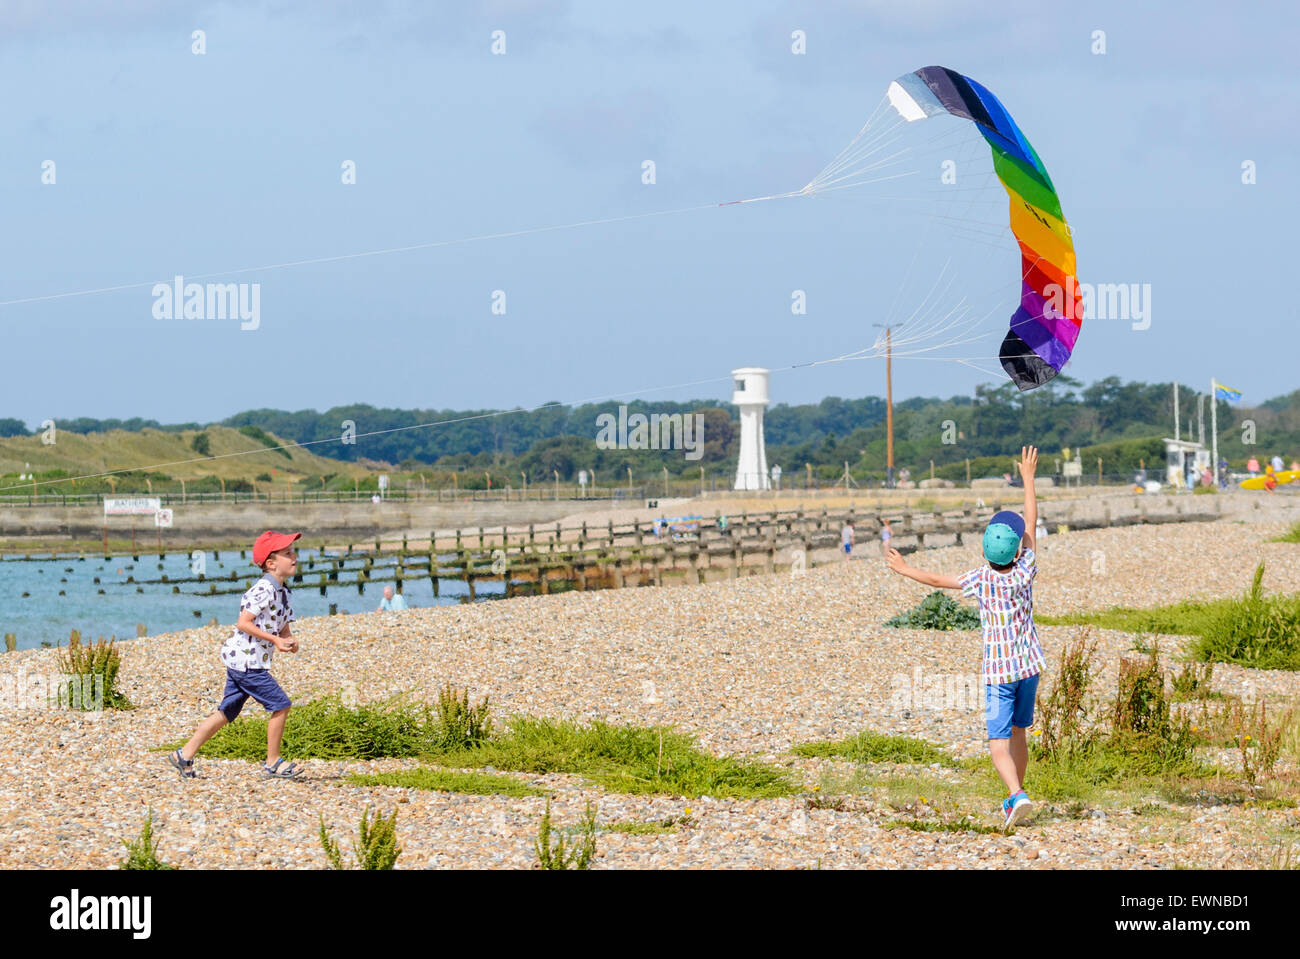 Young boys jumping up to catch a flying kite, on the beach in summer. - Stock Image